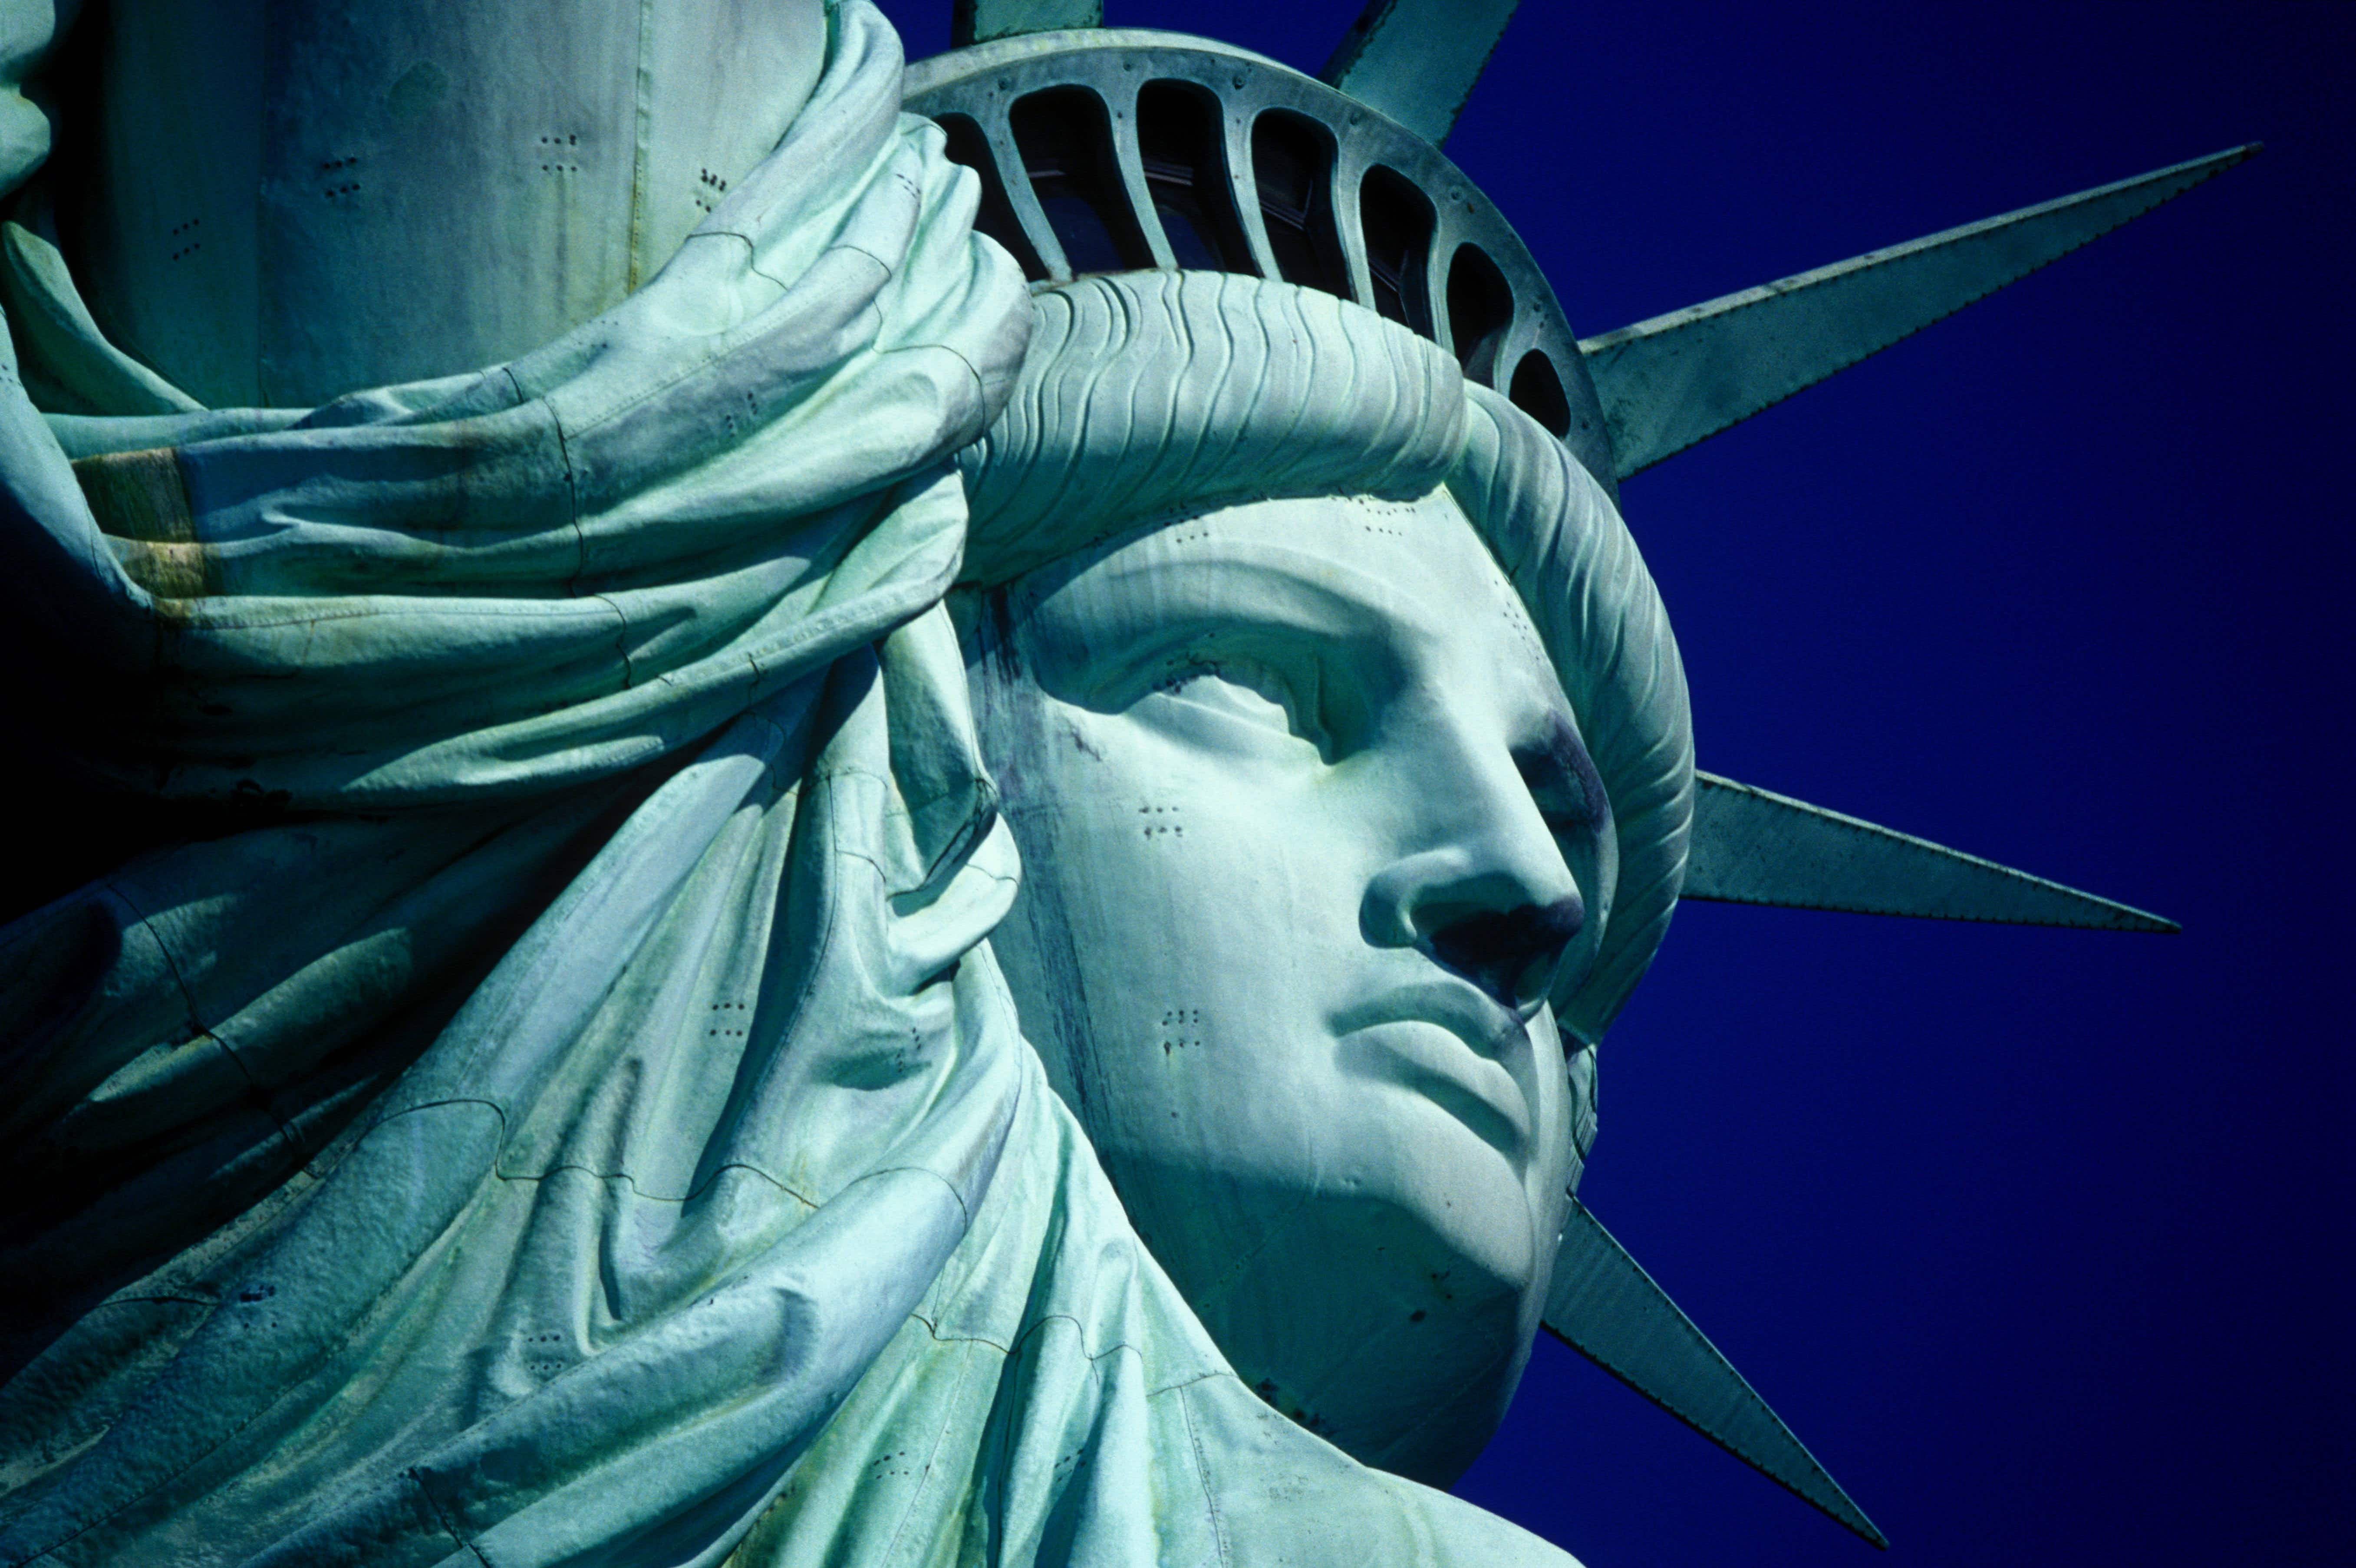 Research shows that the iconic  green Statue of Liberty was actually once red in color